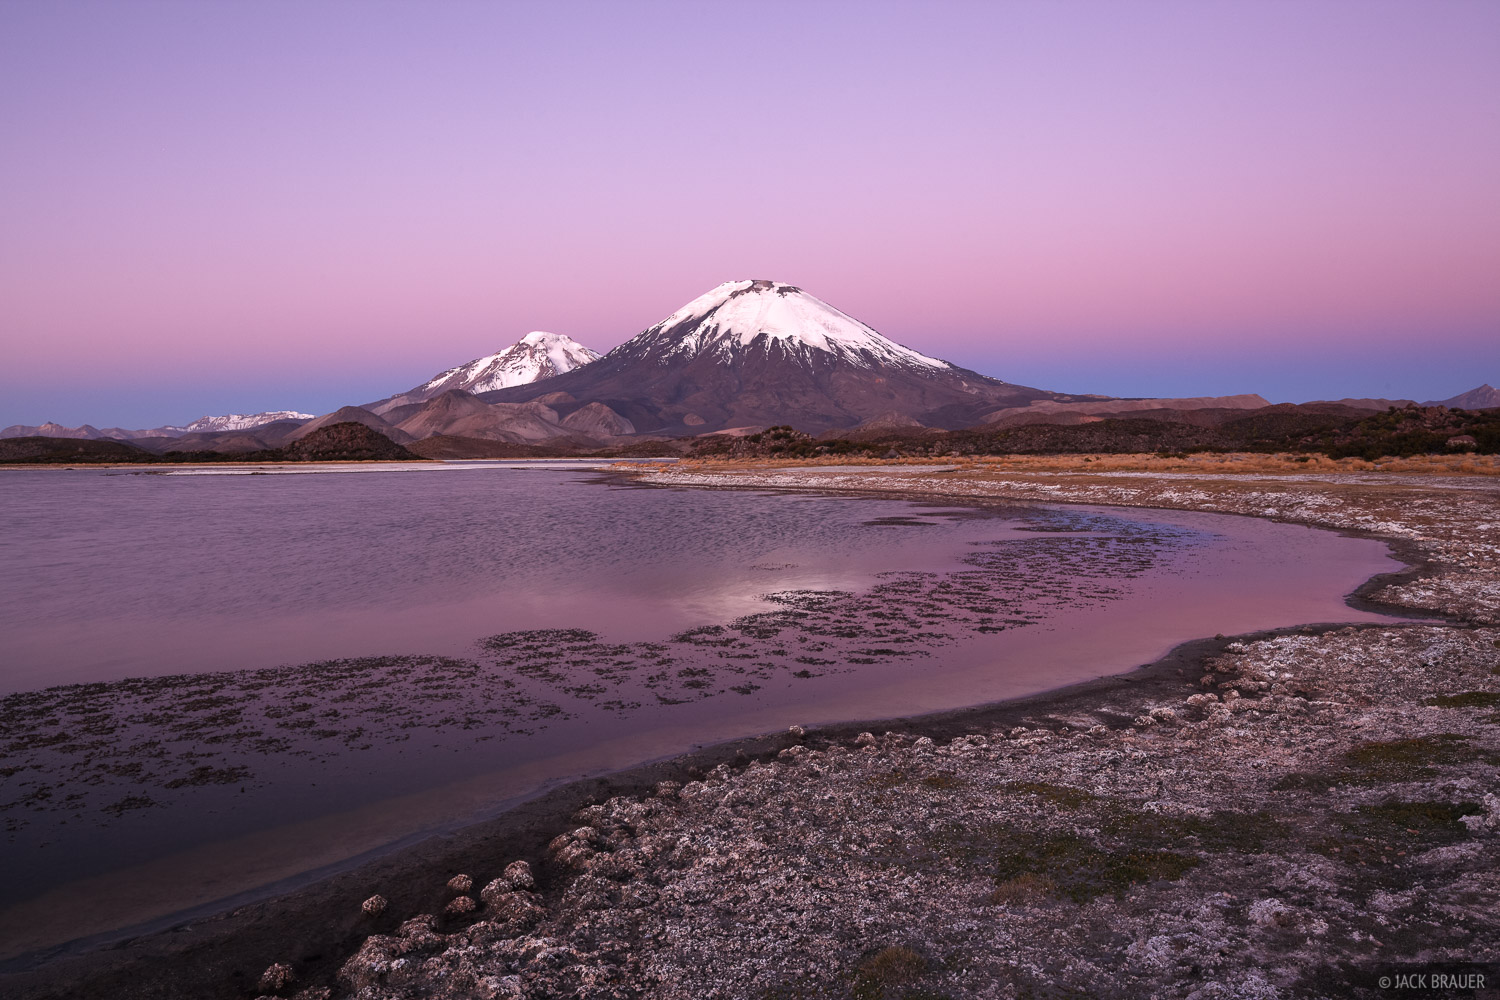 Parinacota, Cotacotani, Lauca, Chile, photo